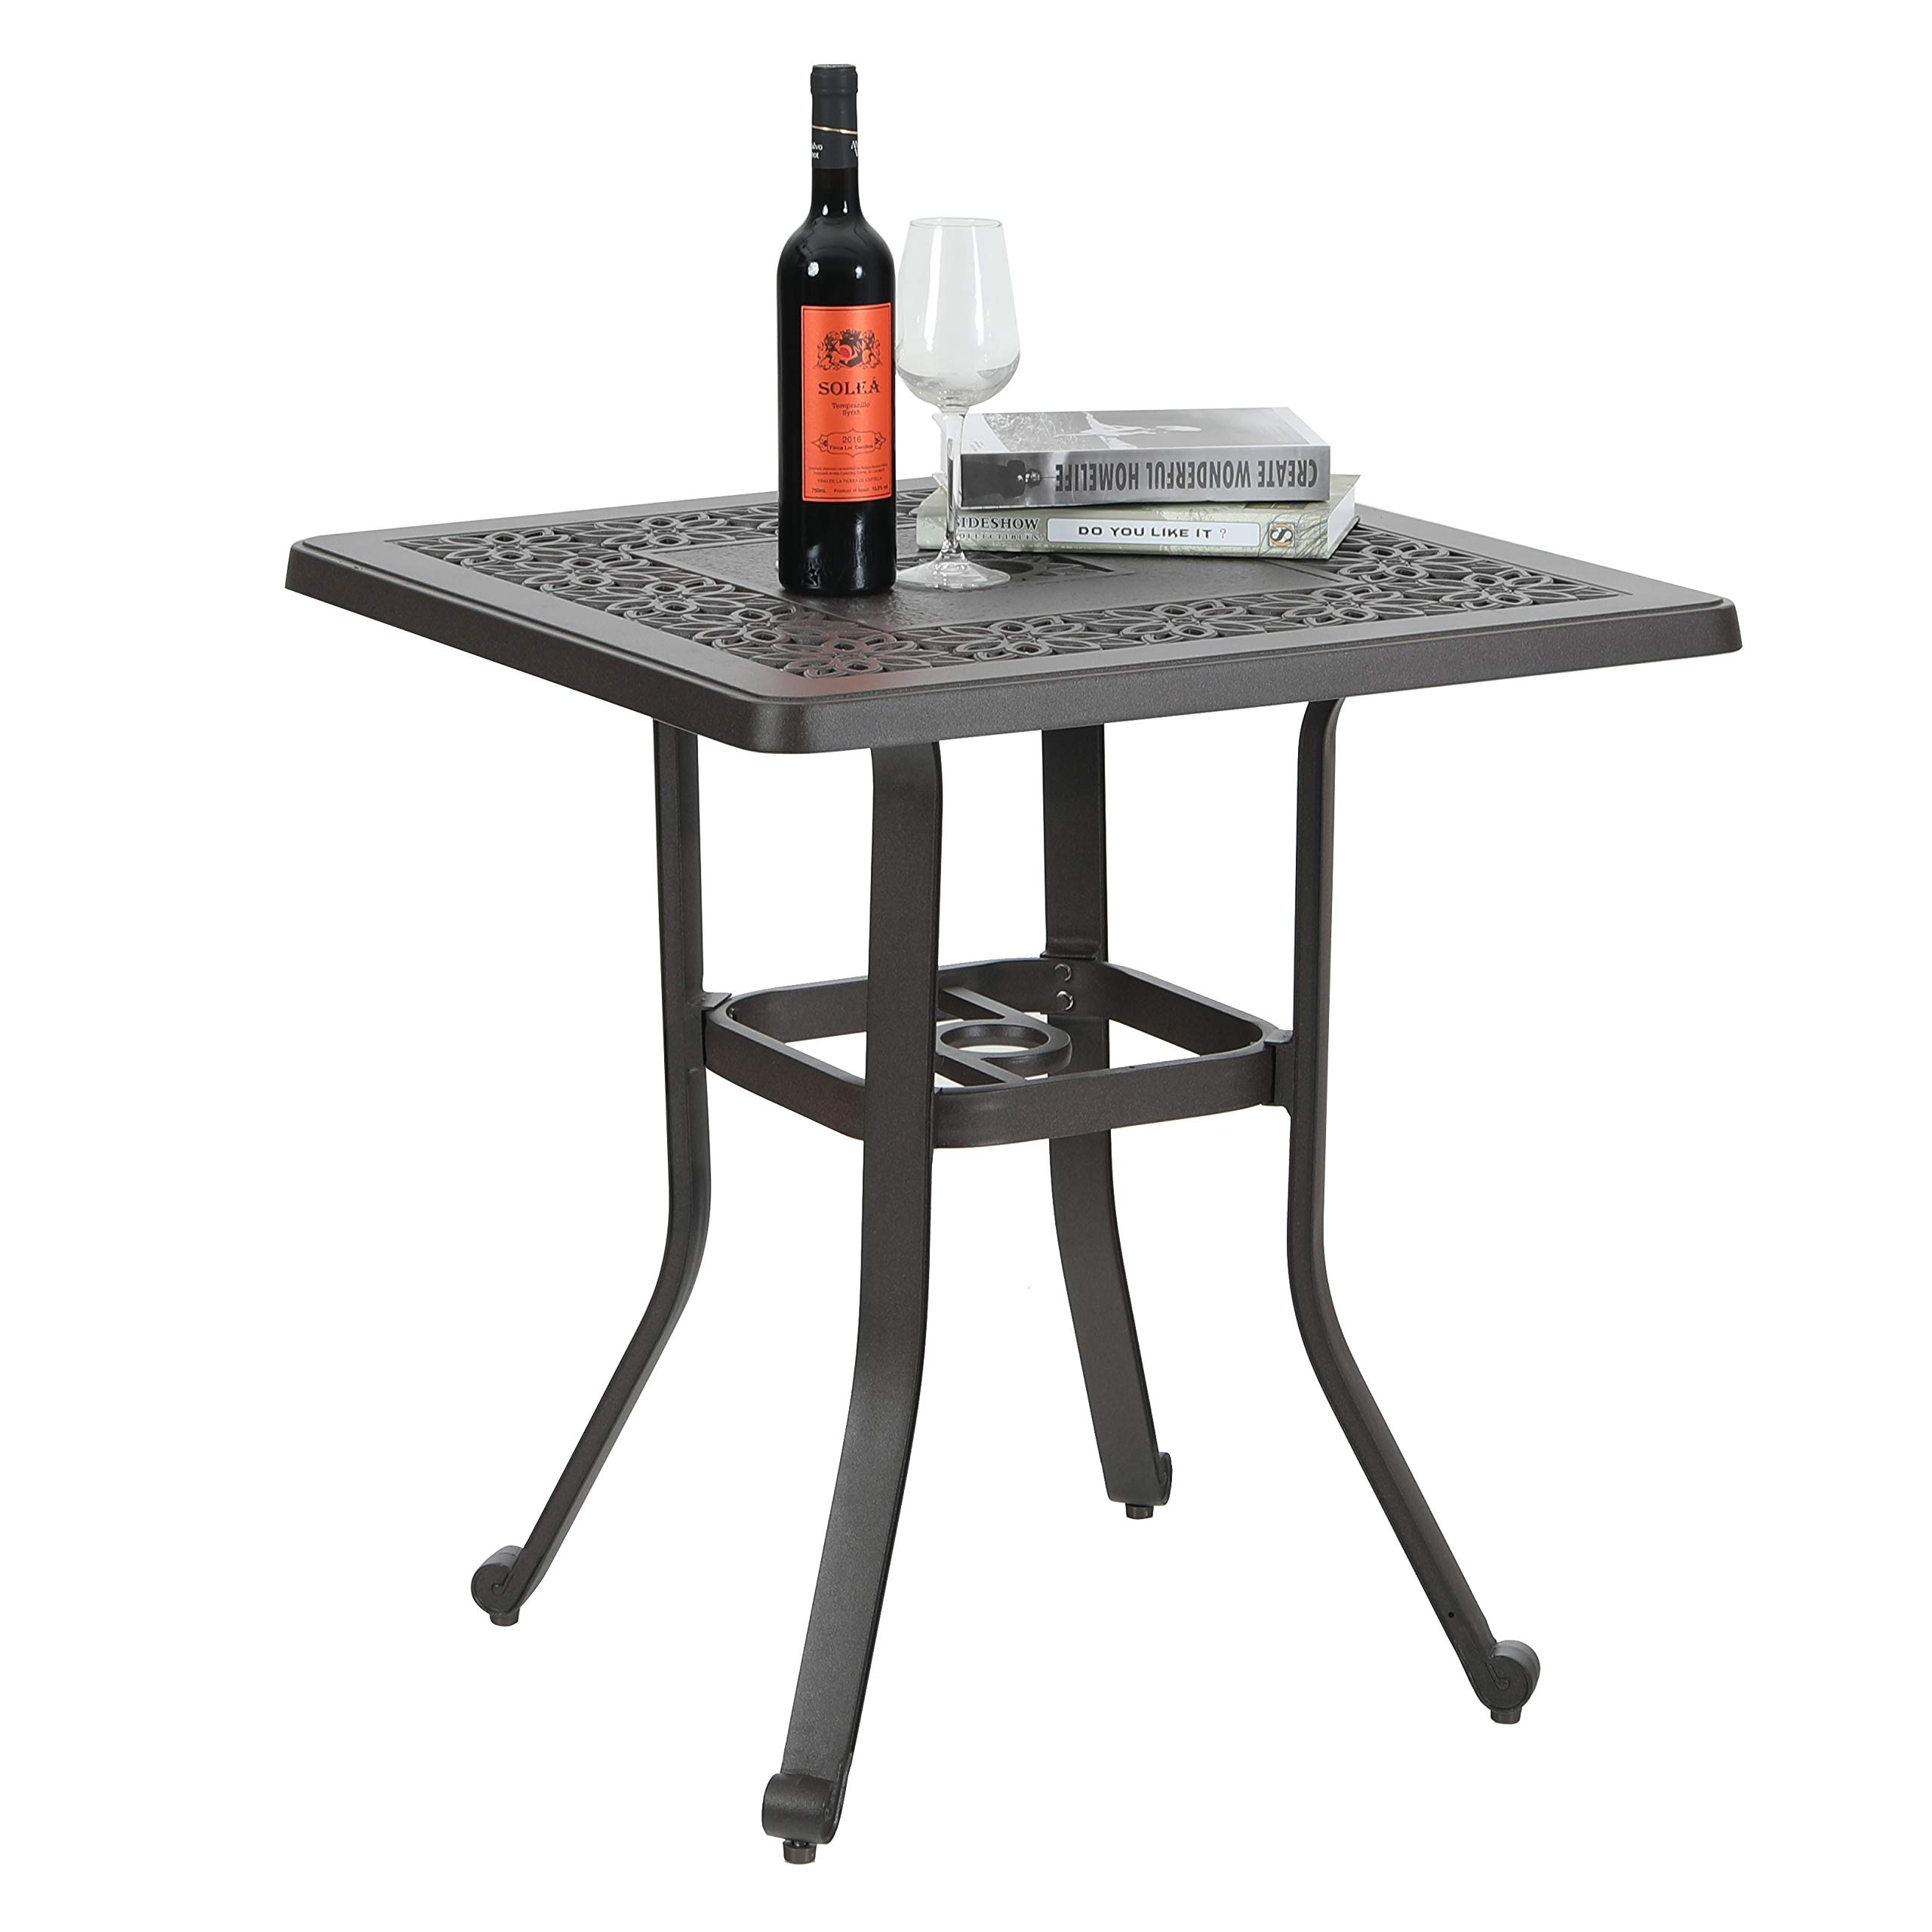 PHI VILLA Patio Cast Aluminum 27.5'' Bistro Square Dining Table with Umbrella Hole and Frosted Surface